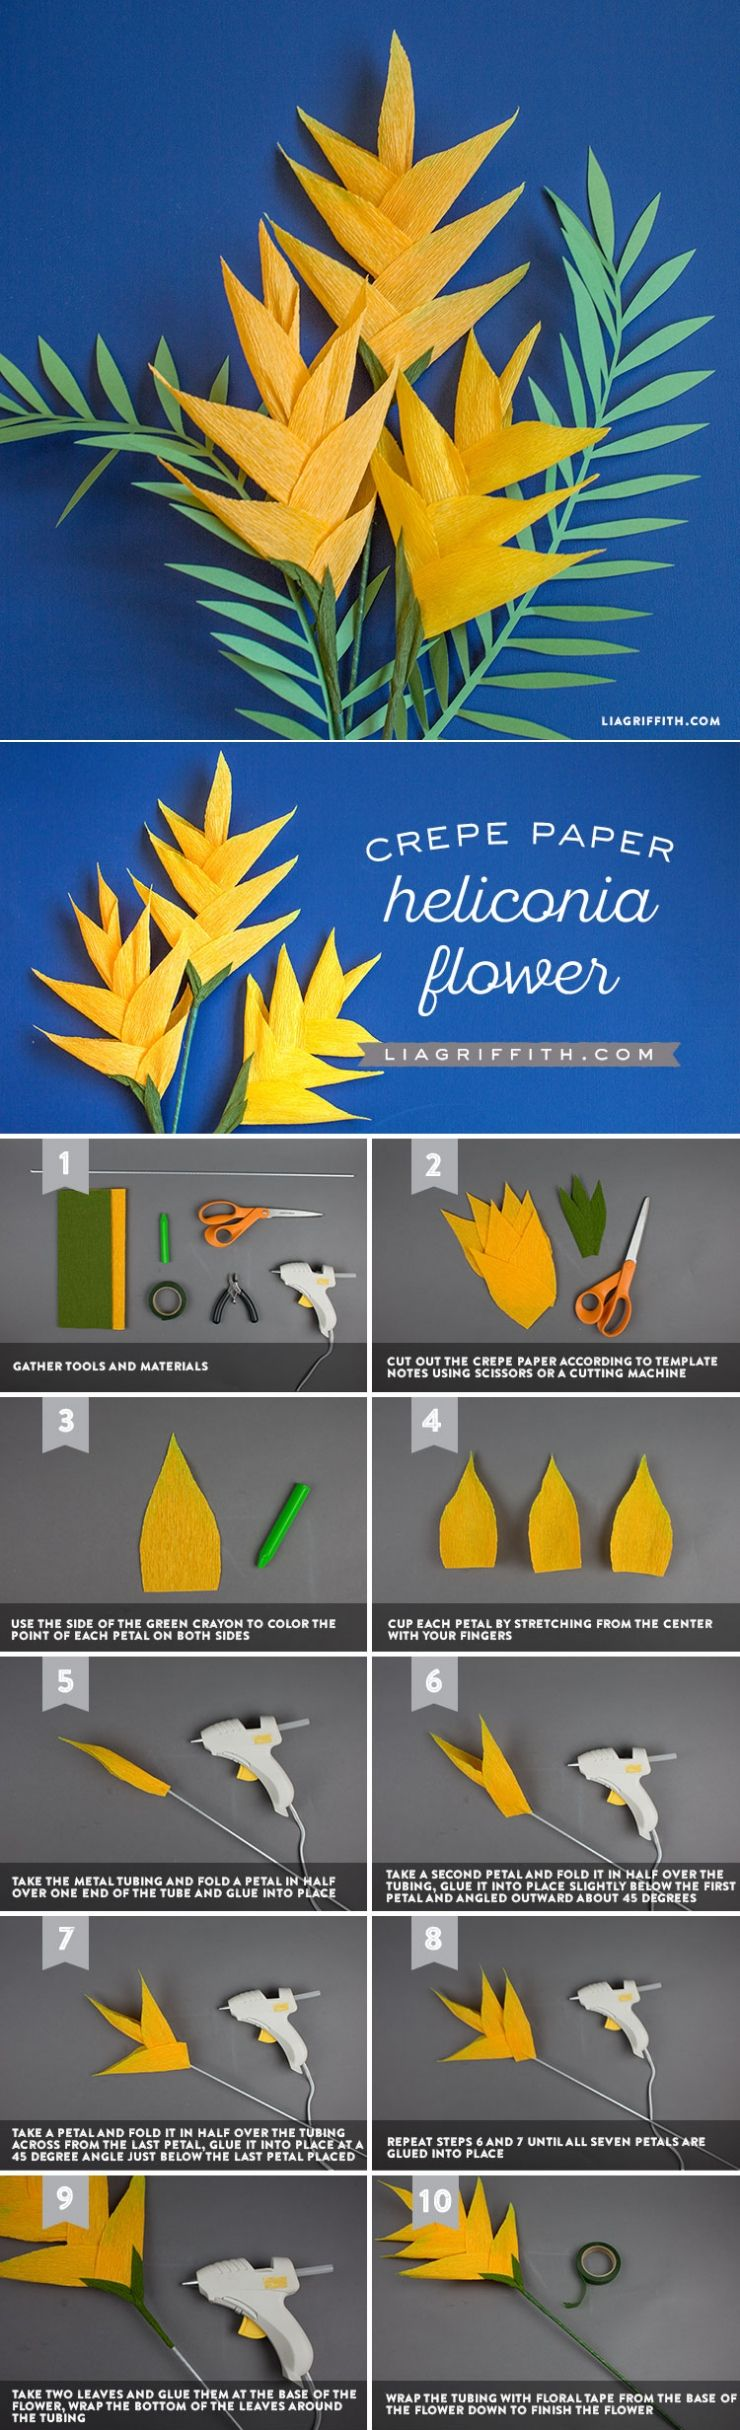 DIY Crepe Paper Heliconia Flowers - www.LiaGriffith.com - #paperflowertutorial #PaperFlowers #PaperFlower #FlowerTutorial #DIYTutorial #CrepePaperRevival #CrepePaperFlowers #TropicalFlowers #botanical